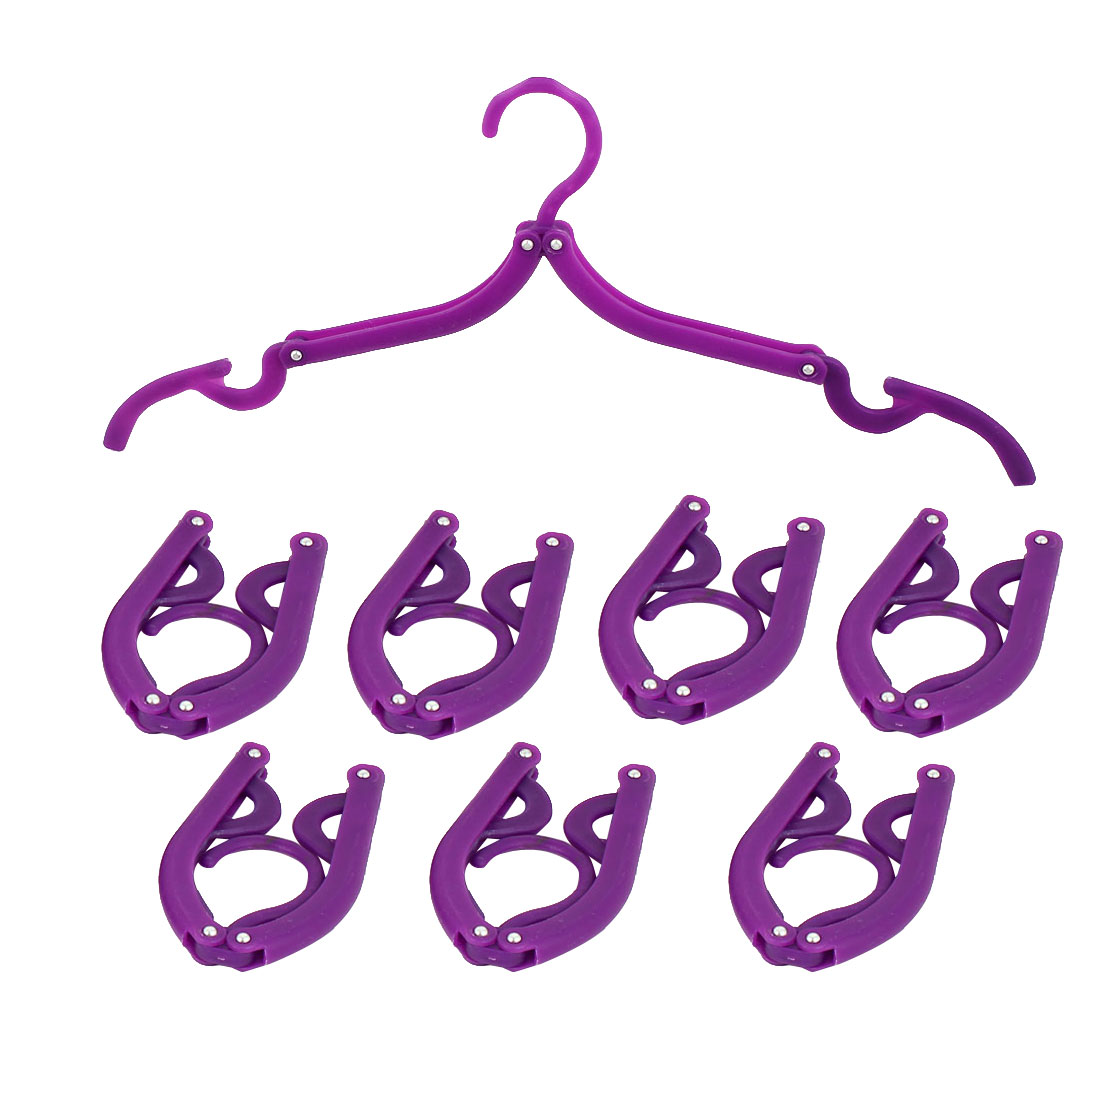 Household Travel Camping Portable Non-slip Folding Clothes Hangers Purple 8 Pcs